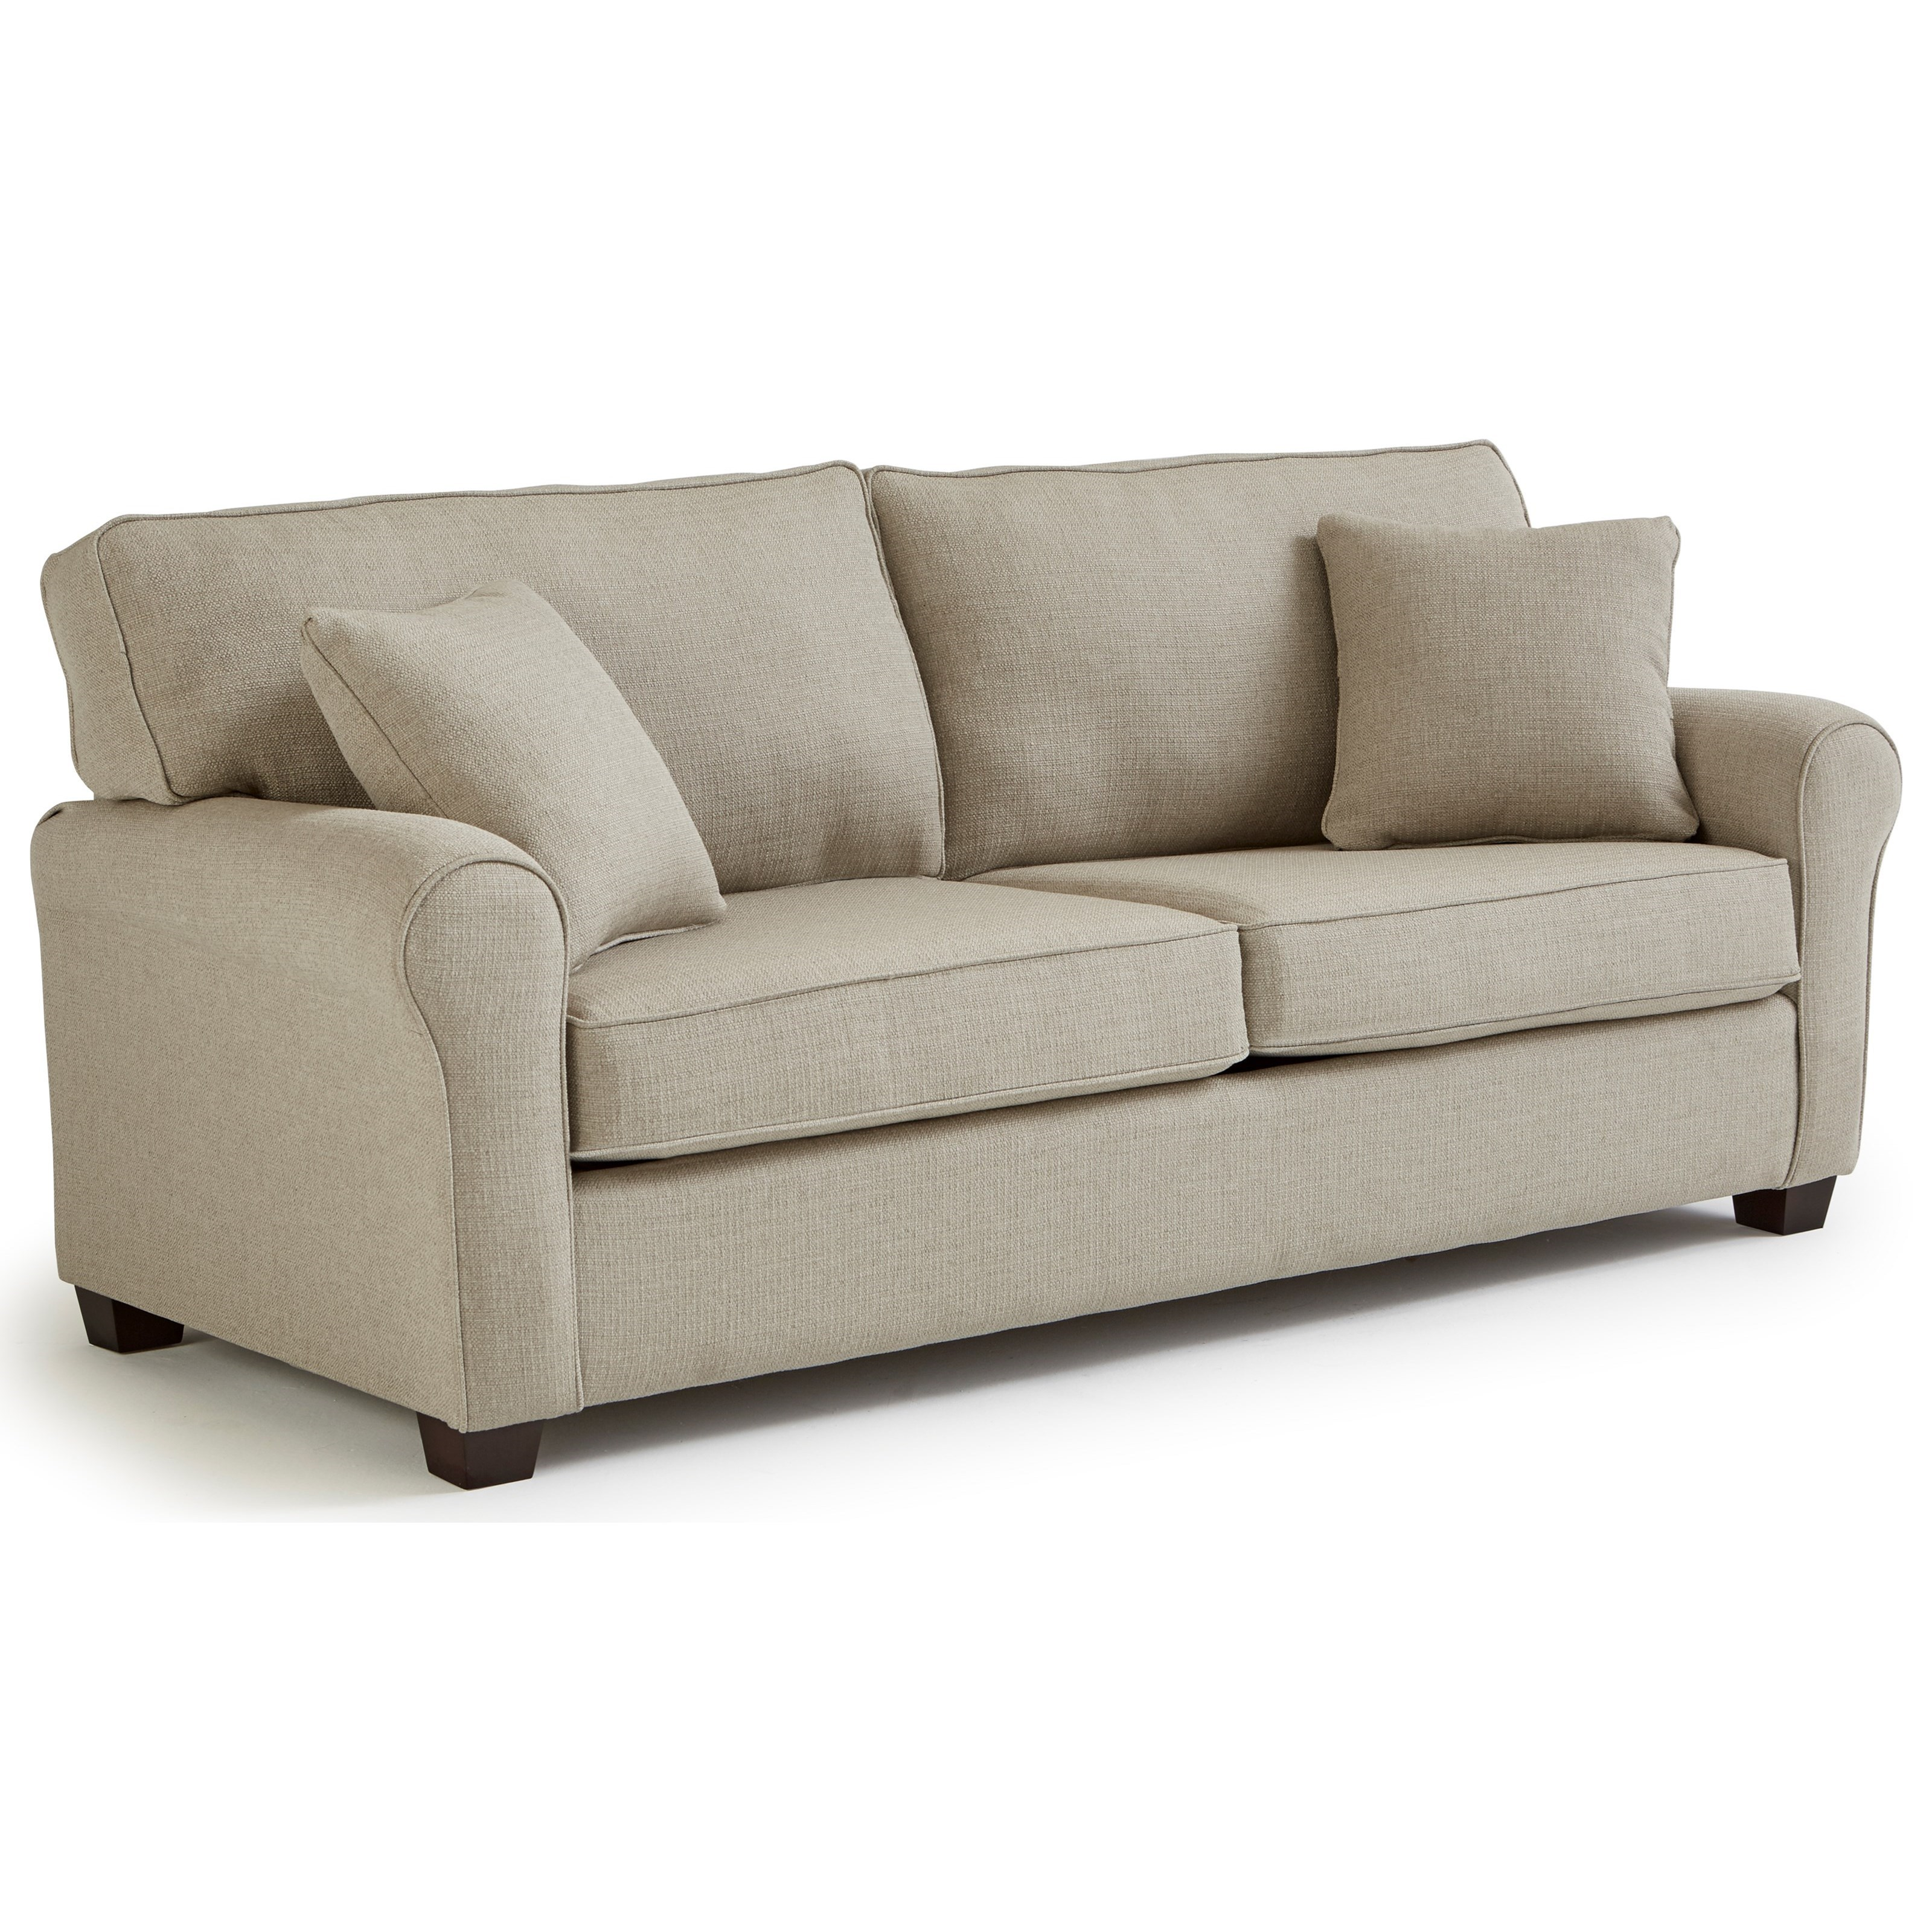 Shannon Queen Sofa Sleeper by Best Home Furnishings at Coconis Furniture & Mattress 1st